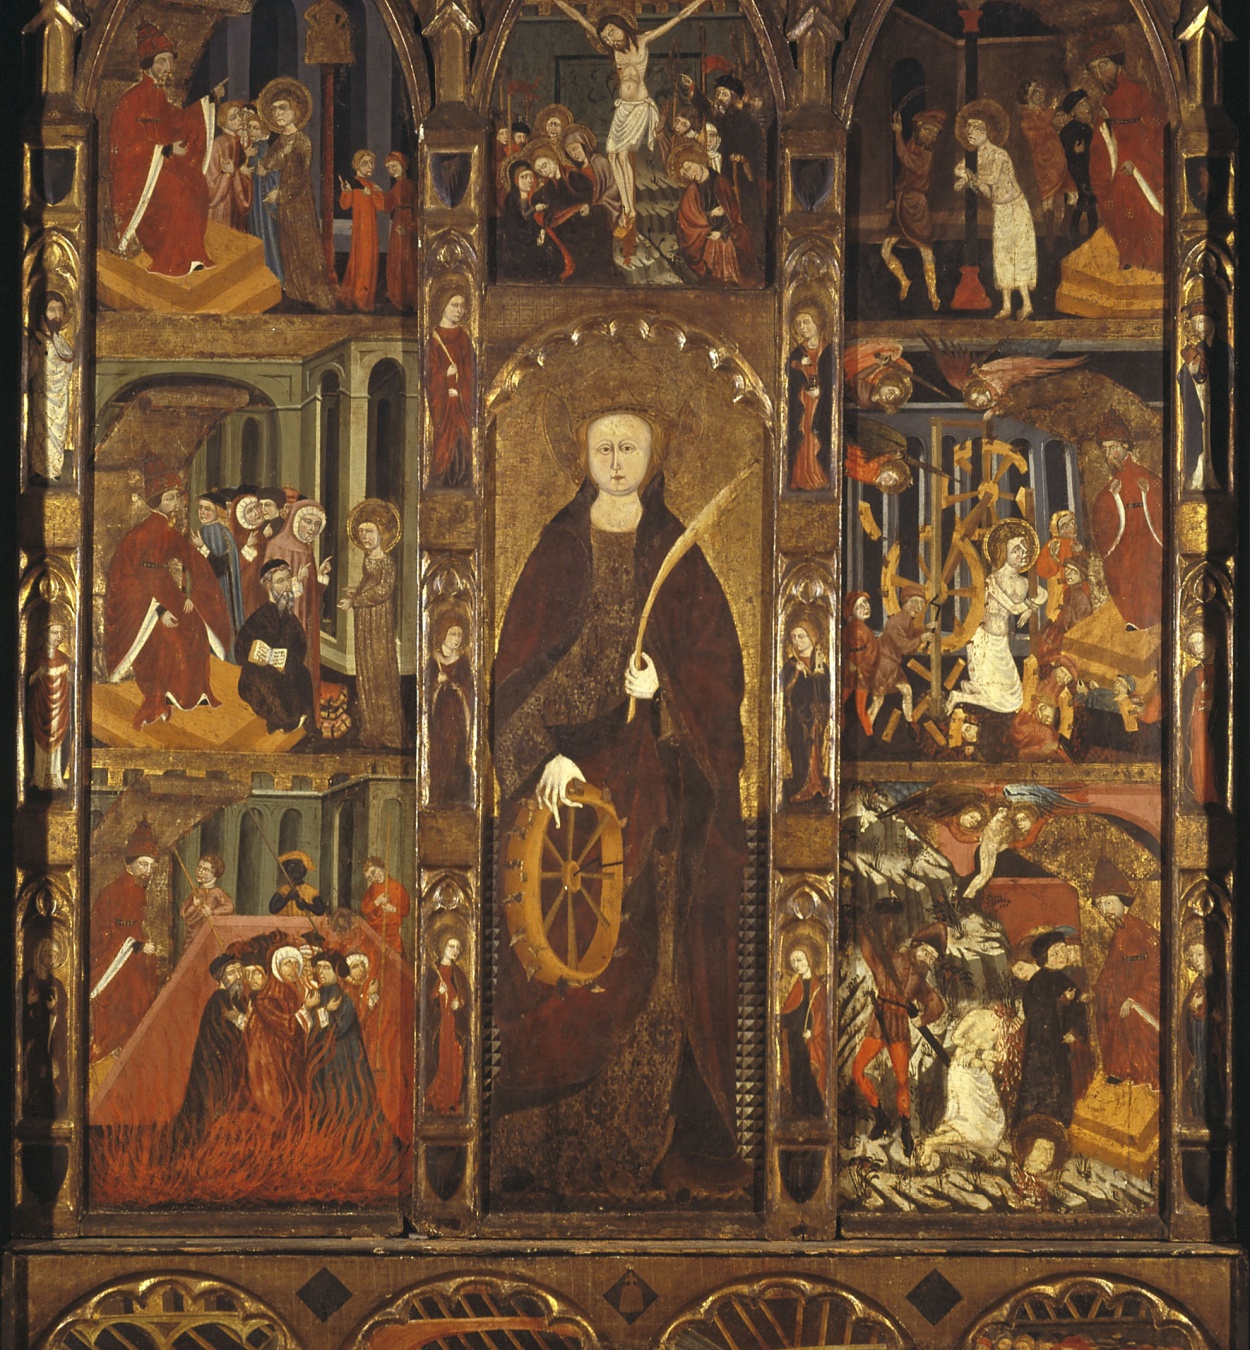 Mestre de Castellbò - Altarpiece of Saint Catherine and Saint Eligius - Circa 1400